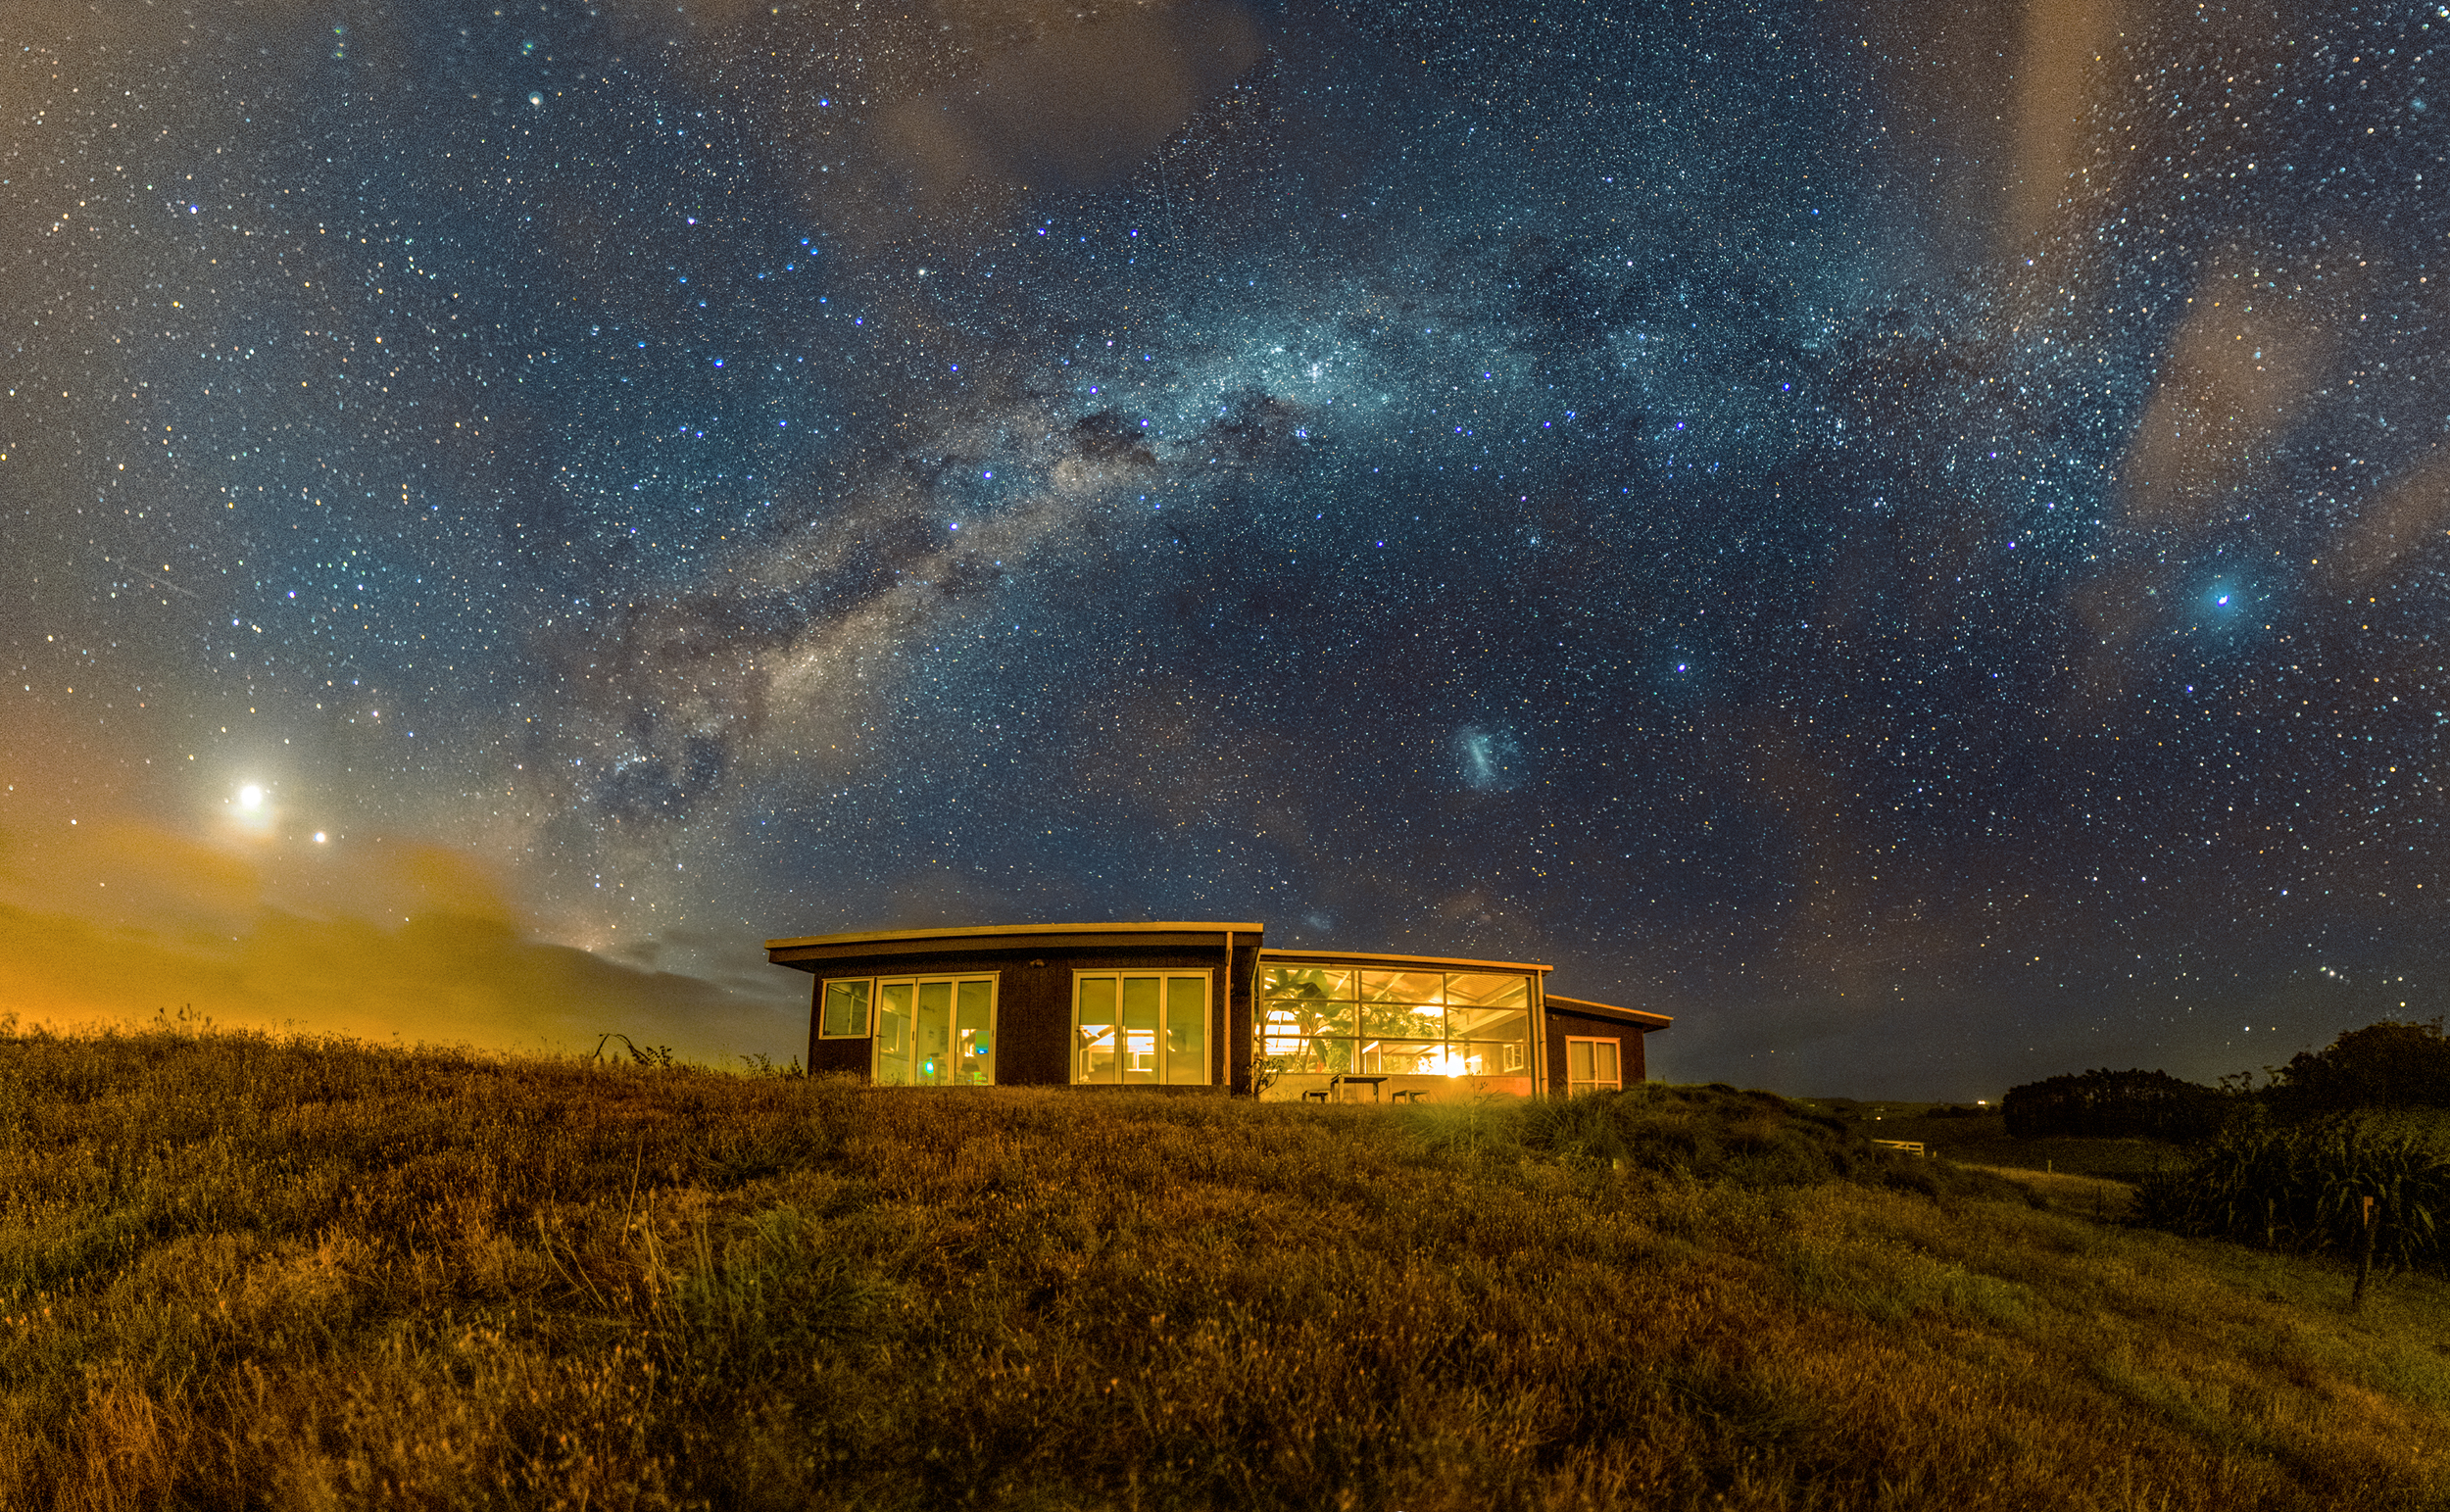 Astro - The workshop is during the New Moon. If the skies are clear we'll work on some astro photography with splendid views right outside the Glass Barn. You'll learn how to plan your shoot, camera settings, stitching, grading and posting.